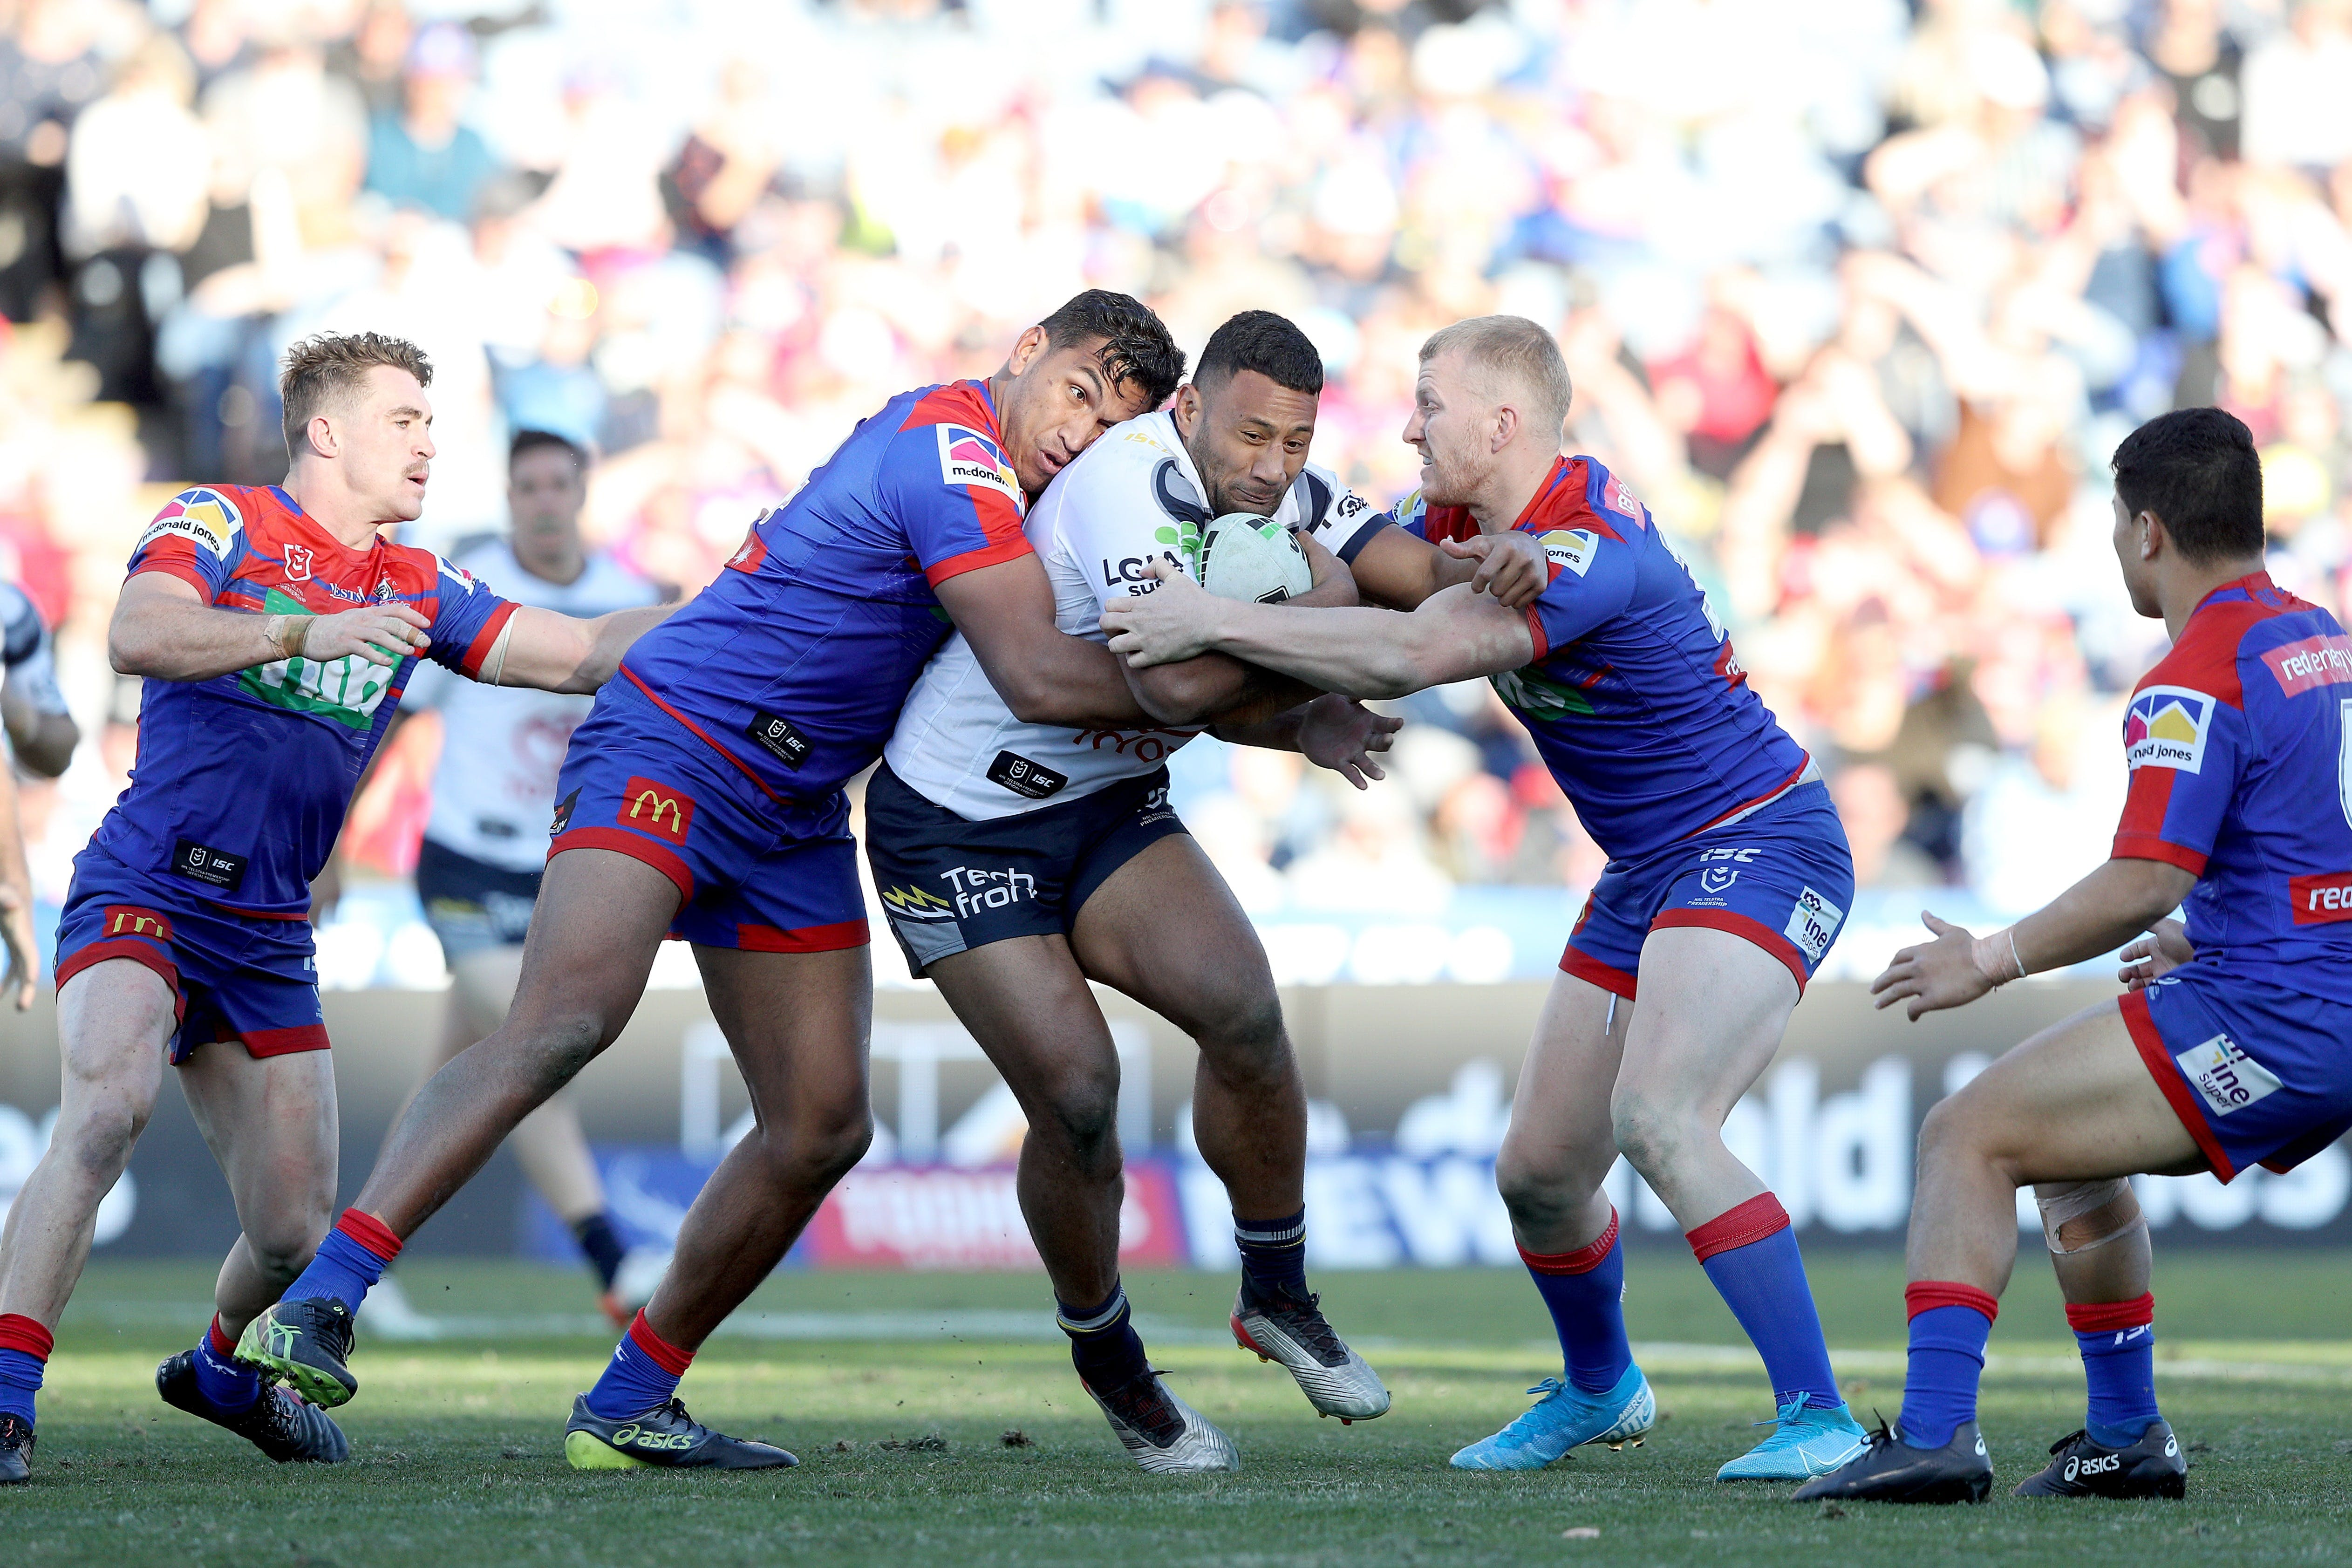 North Queensland Toyota Cowboys versus Newcastle Knights - Foster Accommodation